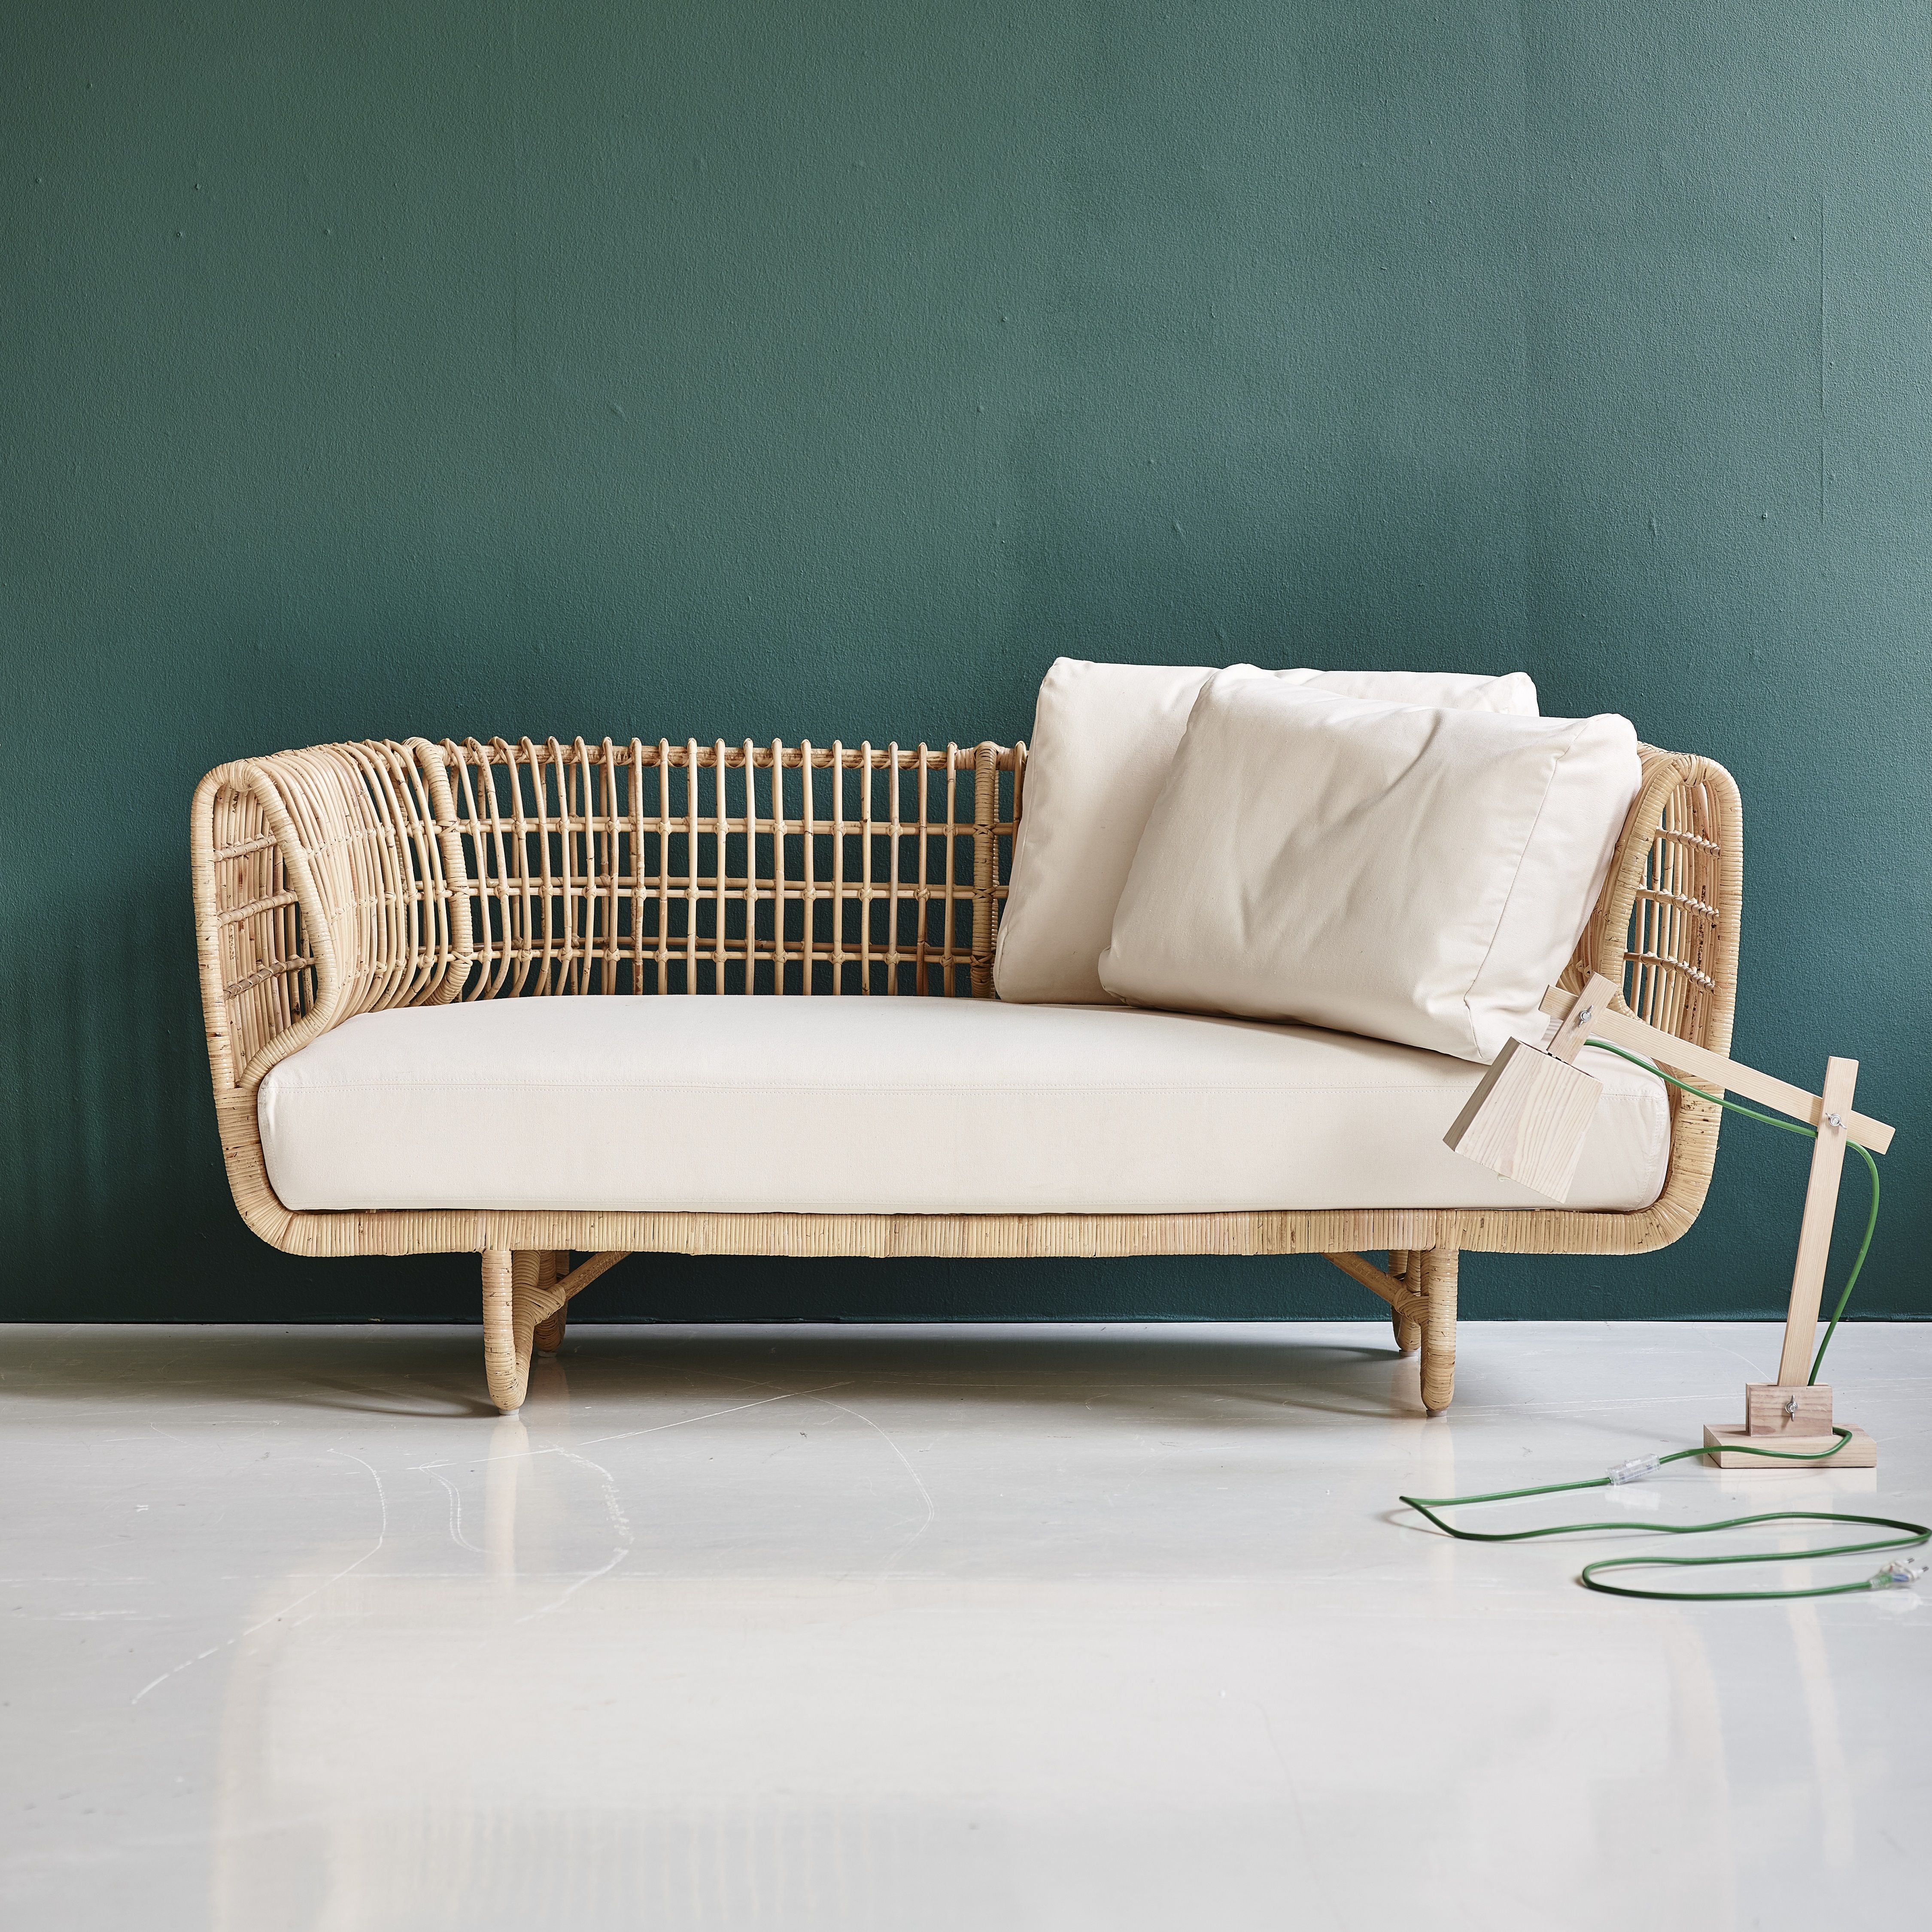 Nest Sofa Cane Line Pinterest